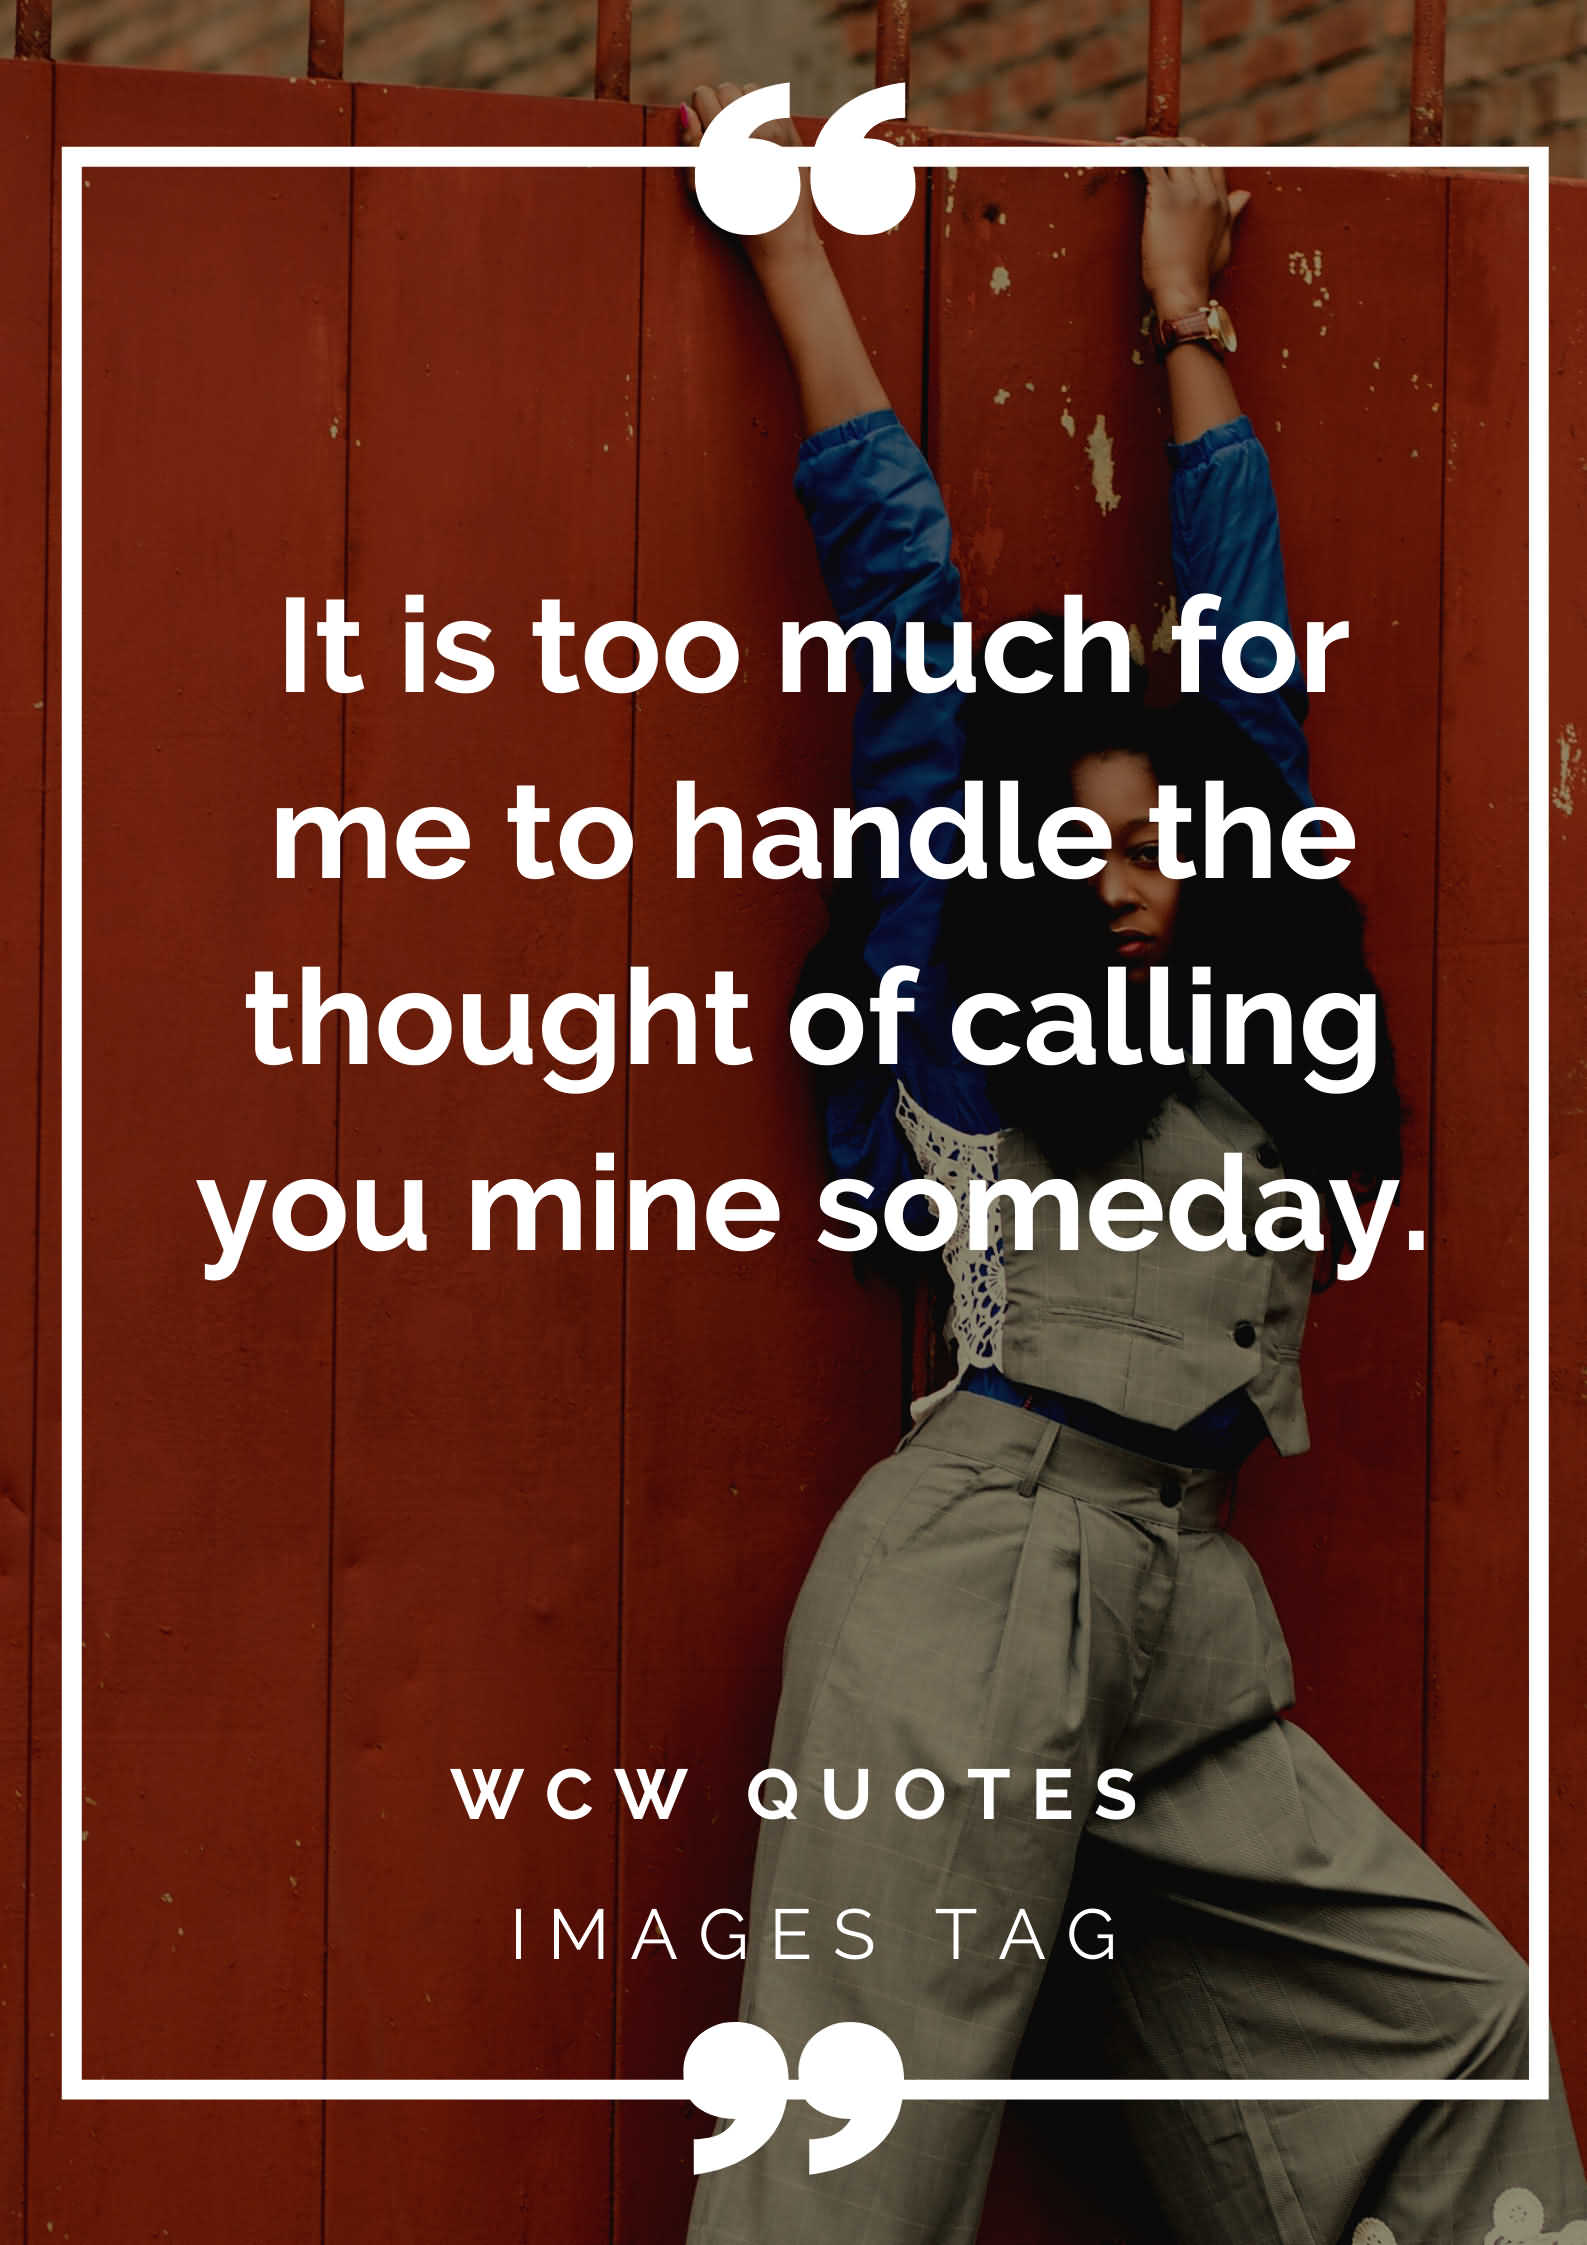 It Is Too Much For Me To Handle The Thought Of Calling You Mine Someday.wcw Quotes For My Daughter